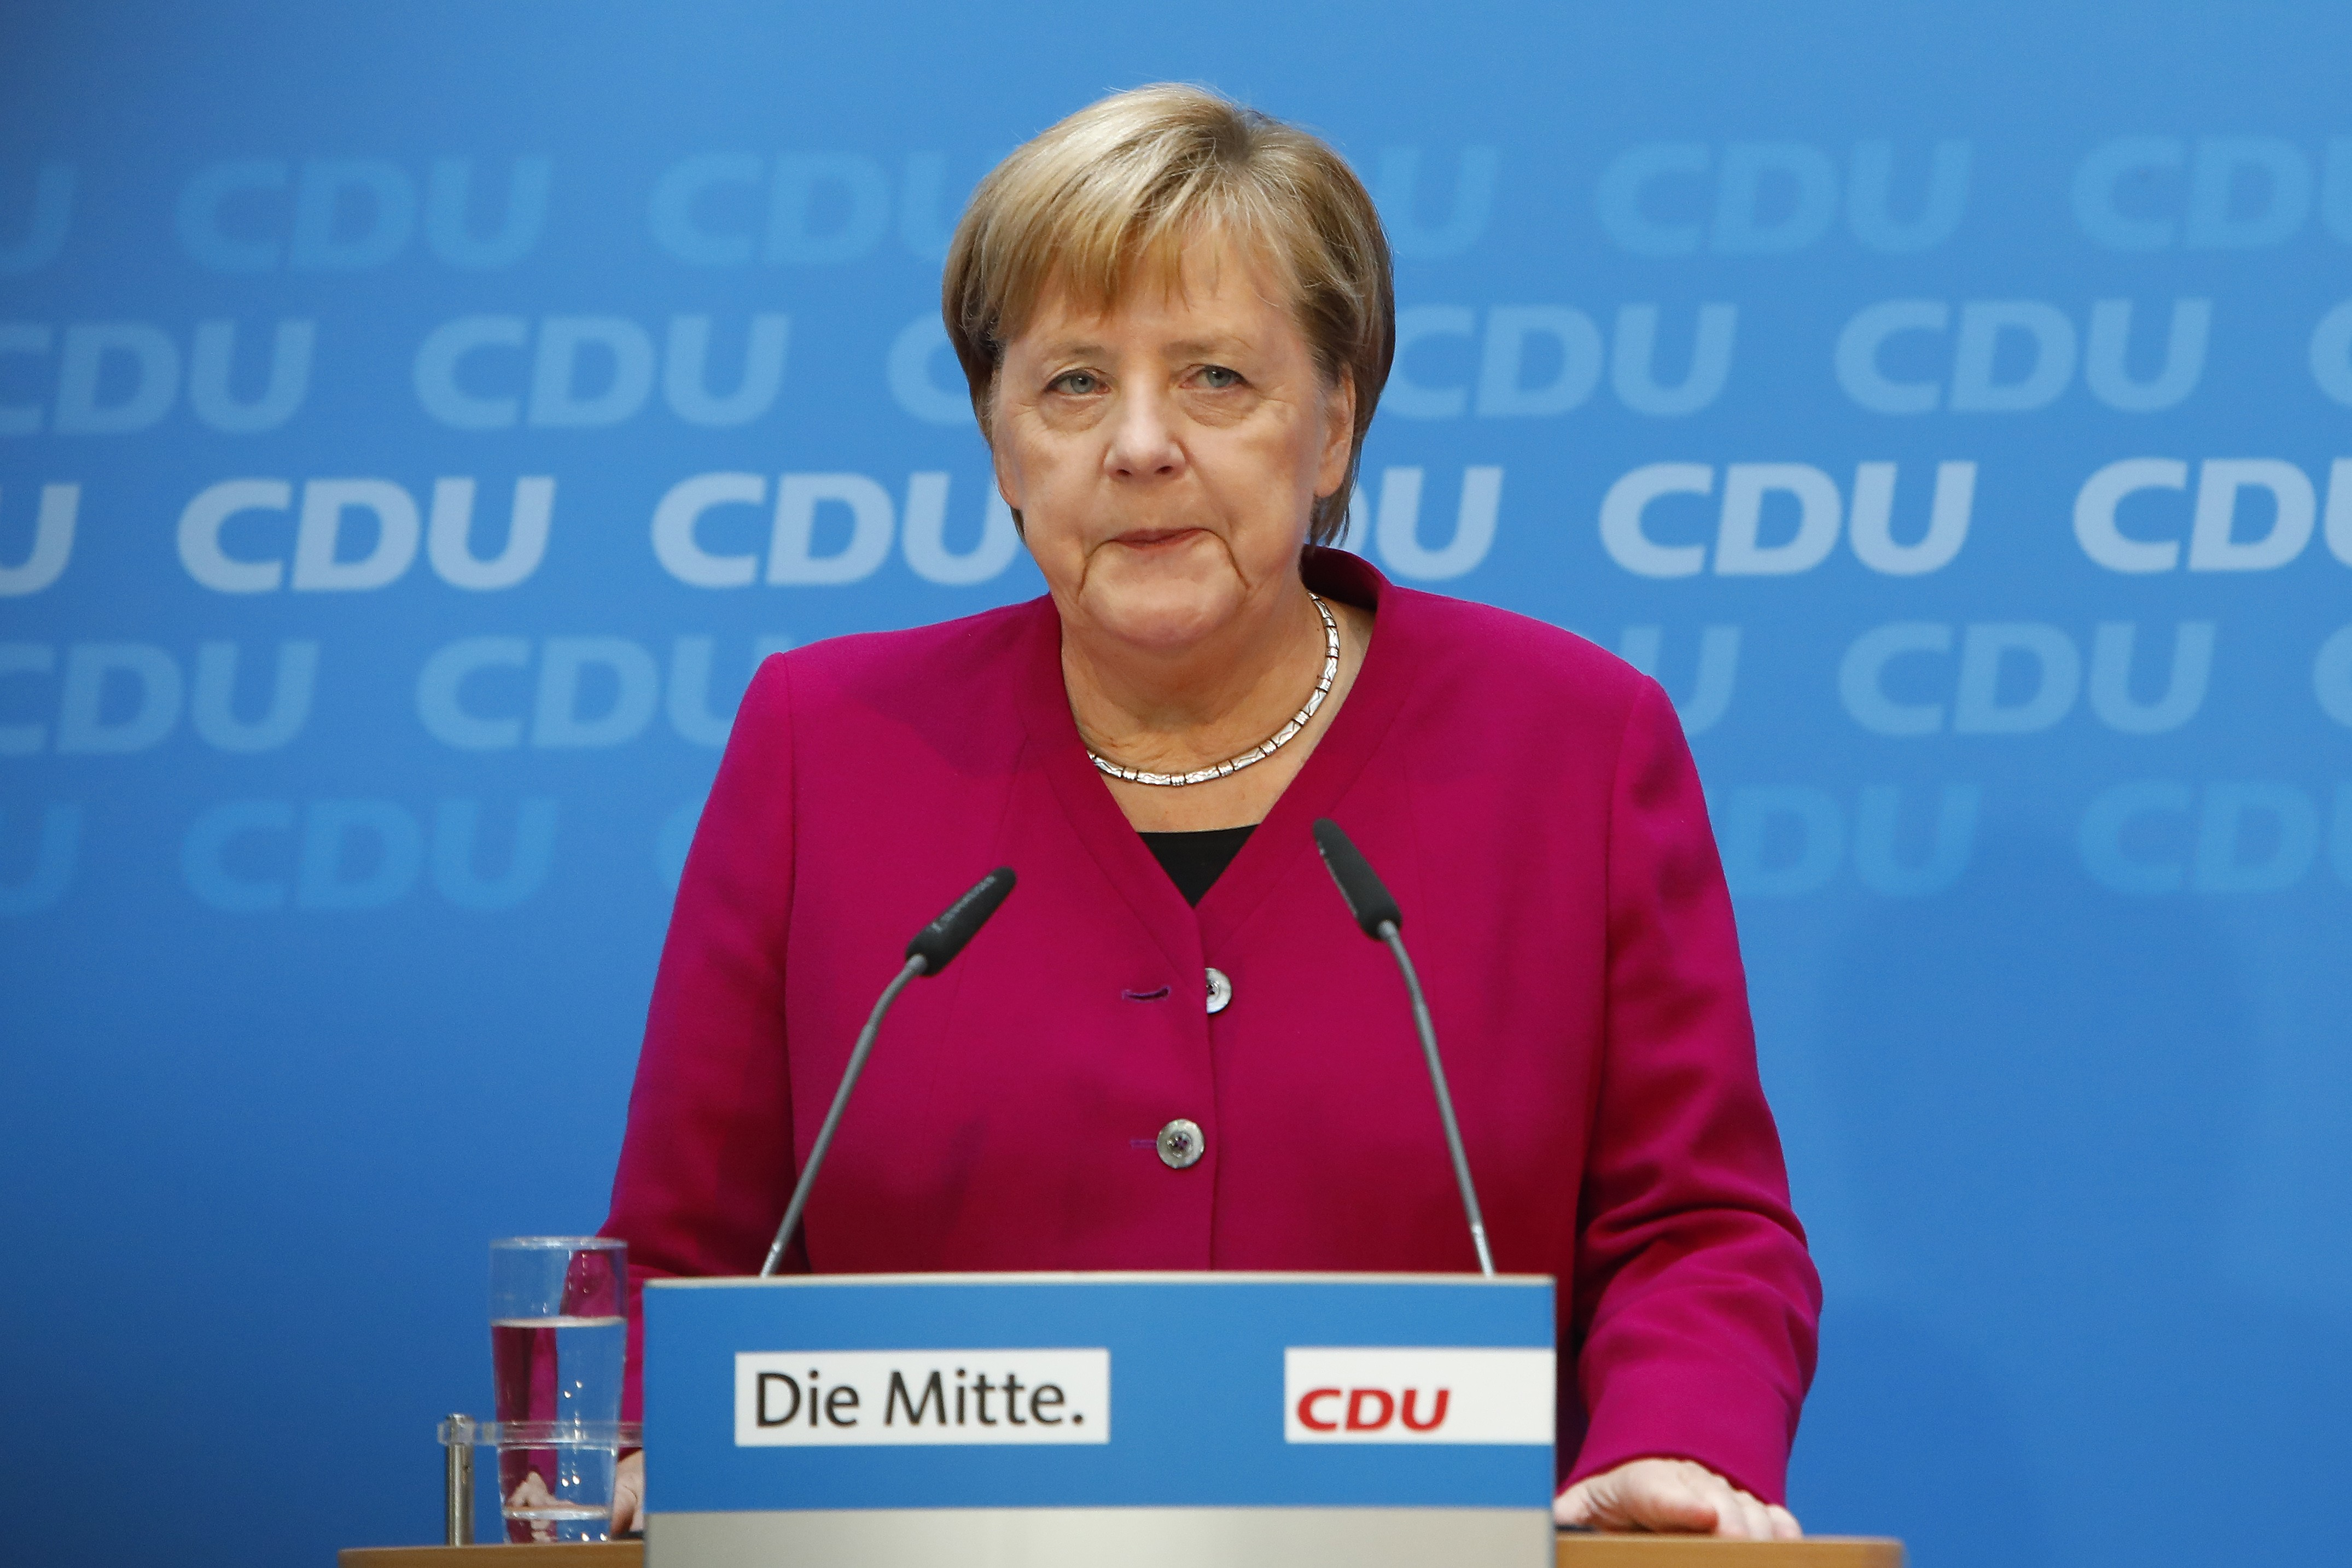 Angela Merkel will step down as Germany's chancellor in 2021